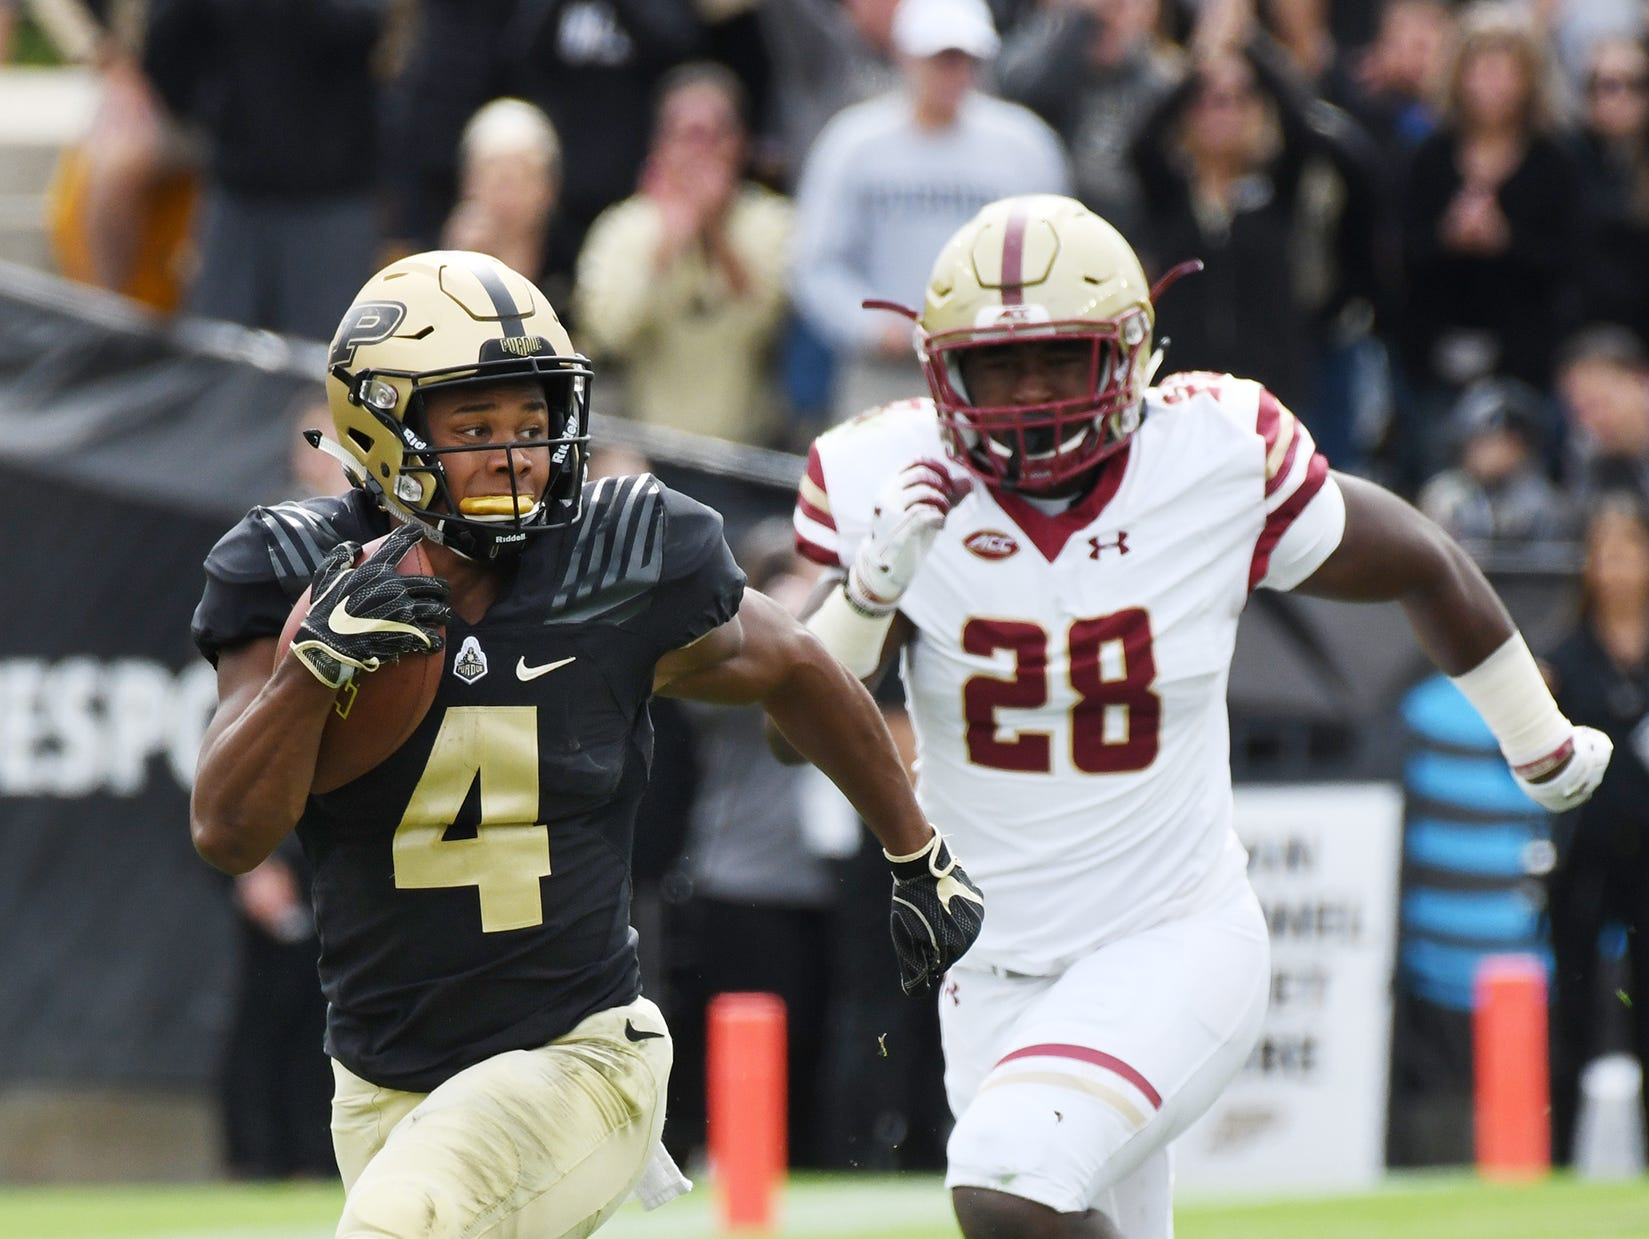 Rondale Moore of Purdue out runs John Lamot of Boston College on a first half touchdown reception Saturday, September 22, 2018, in Ross-Ade Stadium.